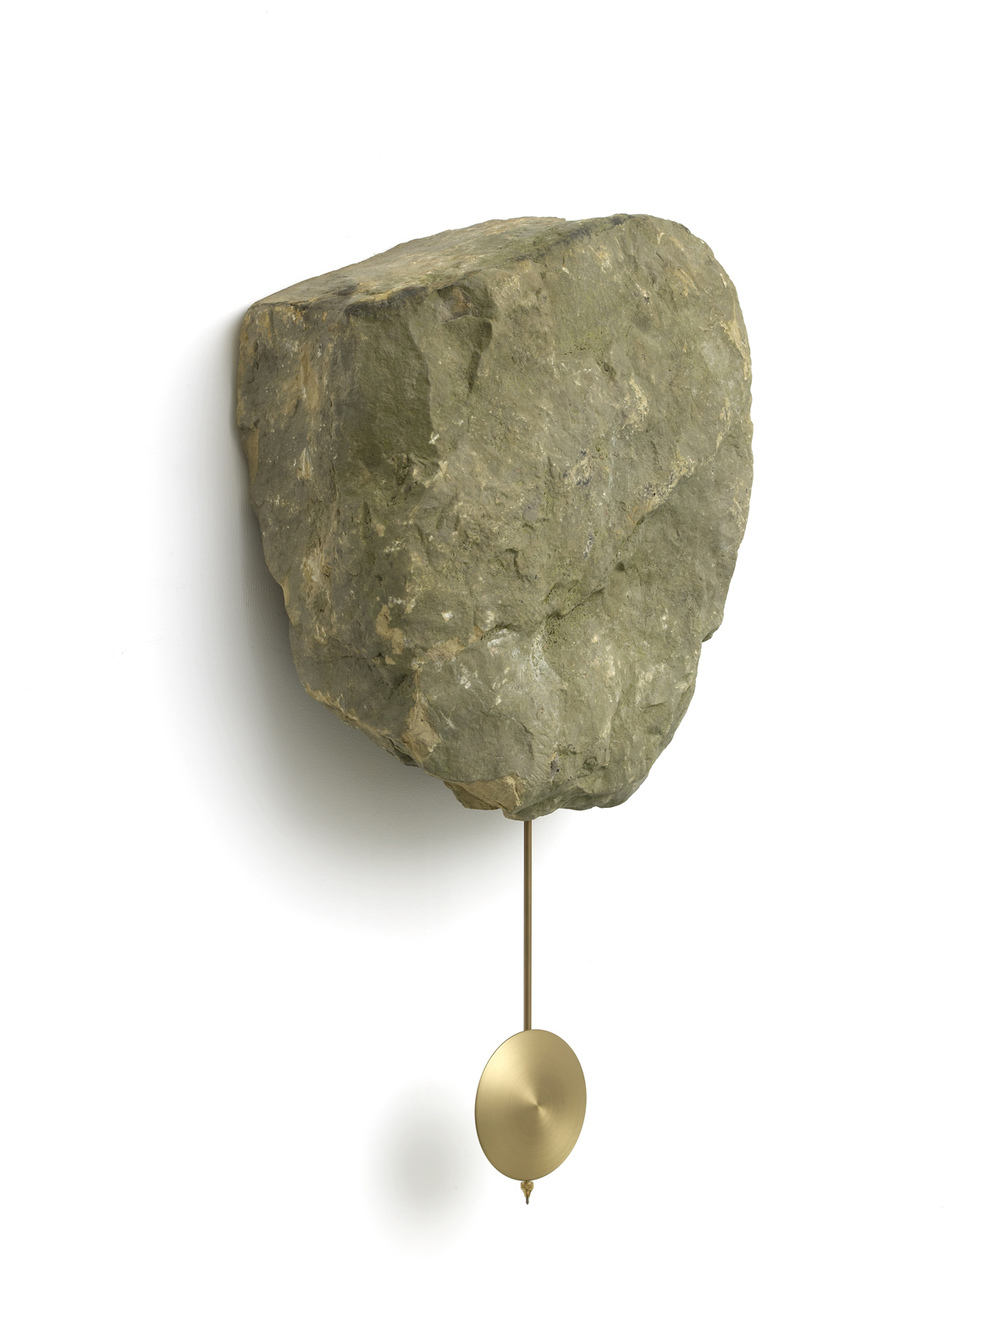 Clock Rock 2015 Yorkstone rock, brass pendulum, clock movement 75 x 44 x 23 cm / 29.5 x 17.3 x 9 in